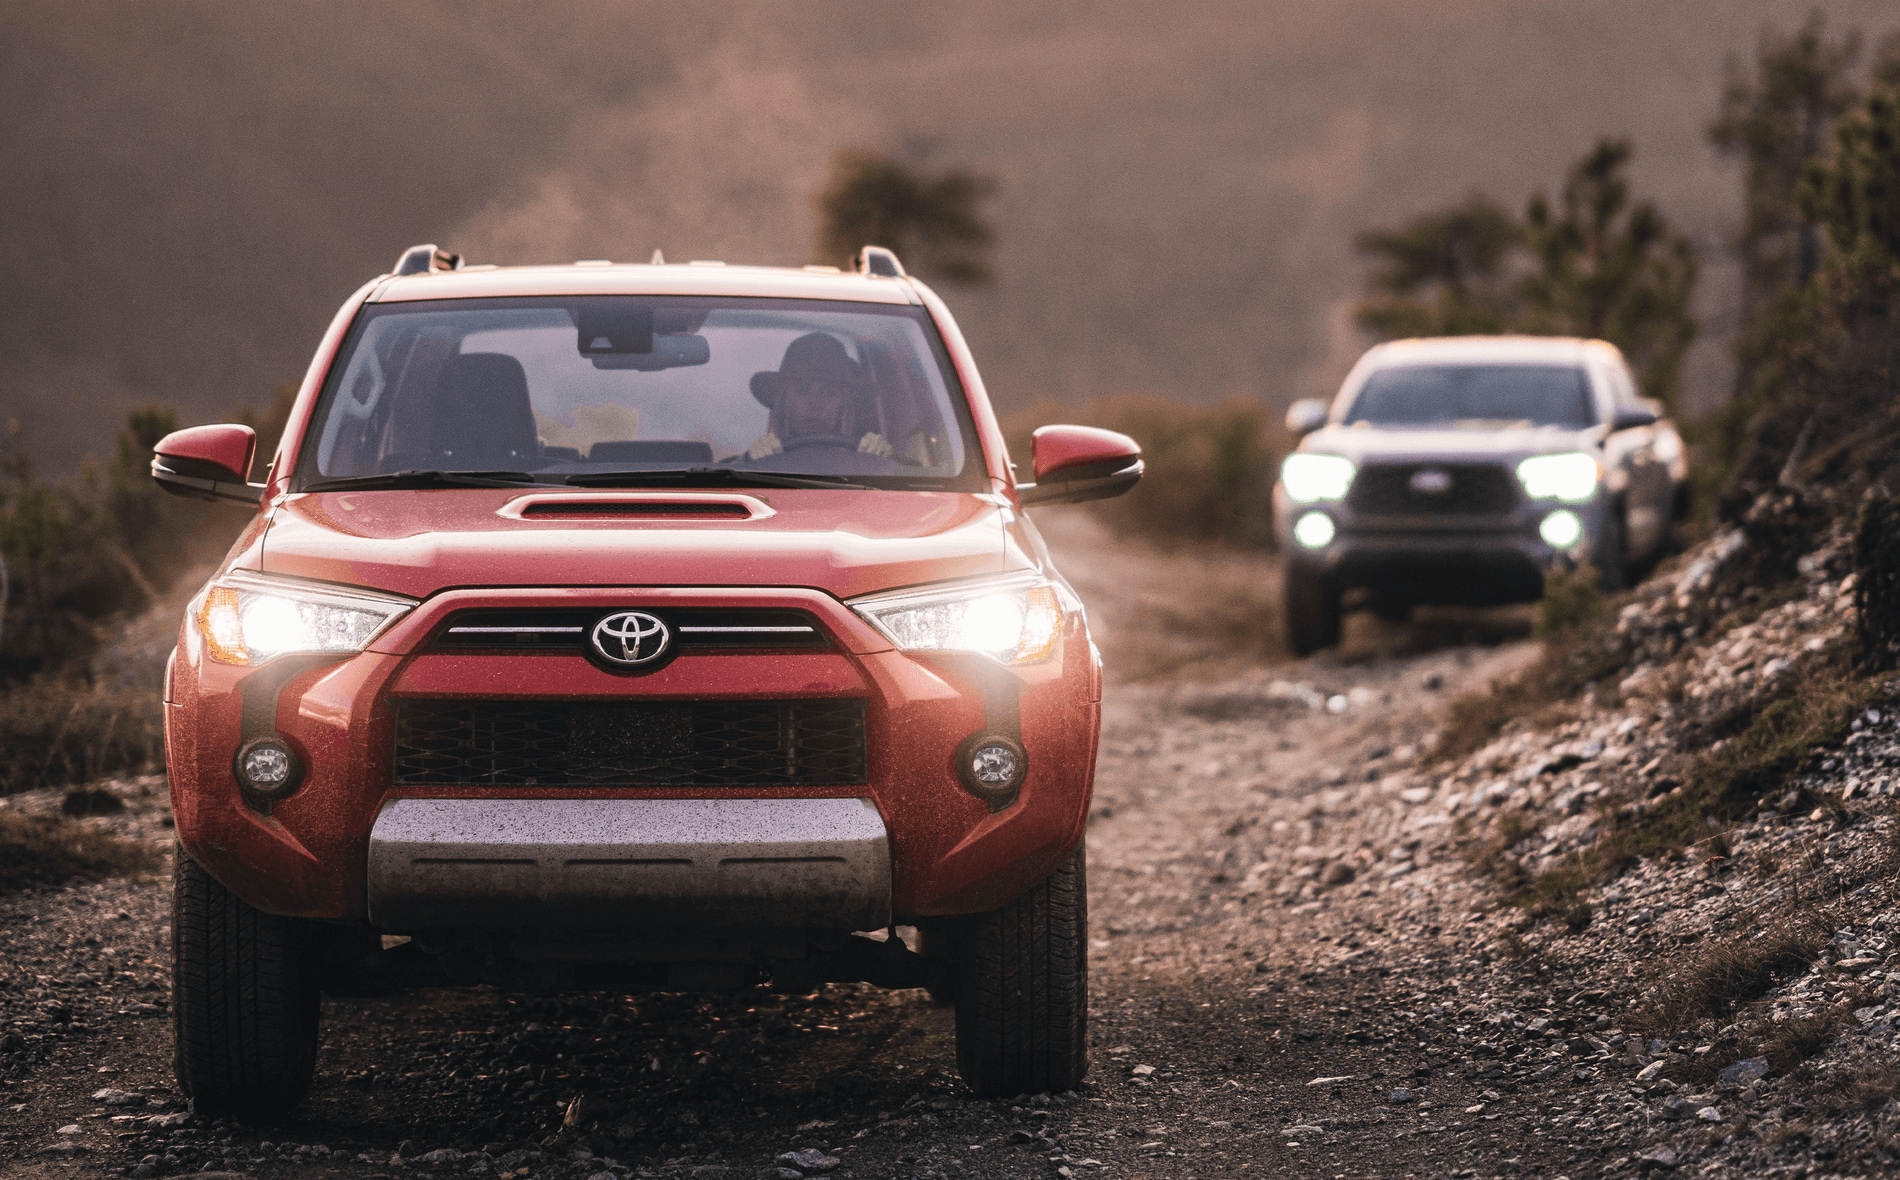 Exterior view of the 2021 Toyota 4Runner